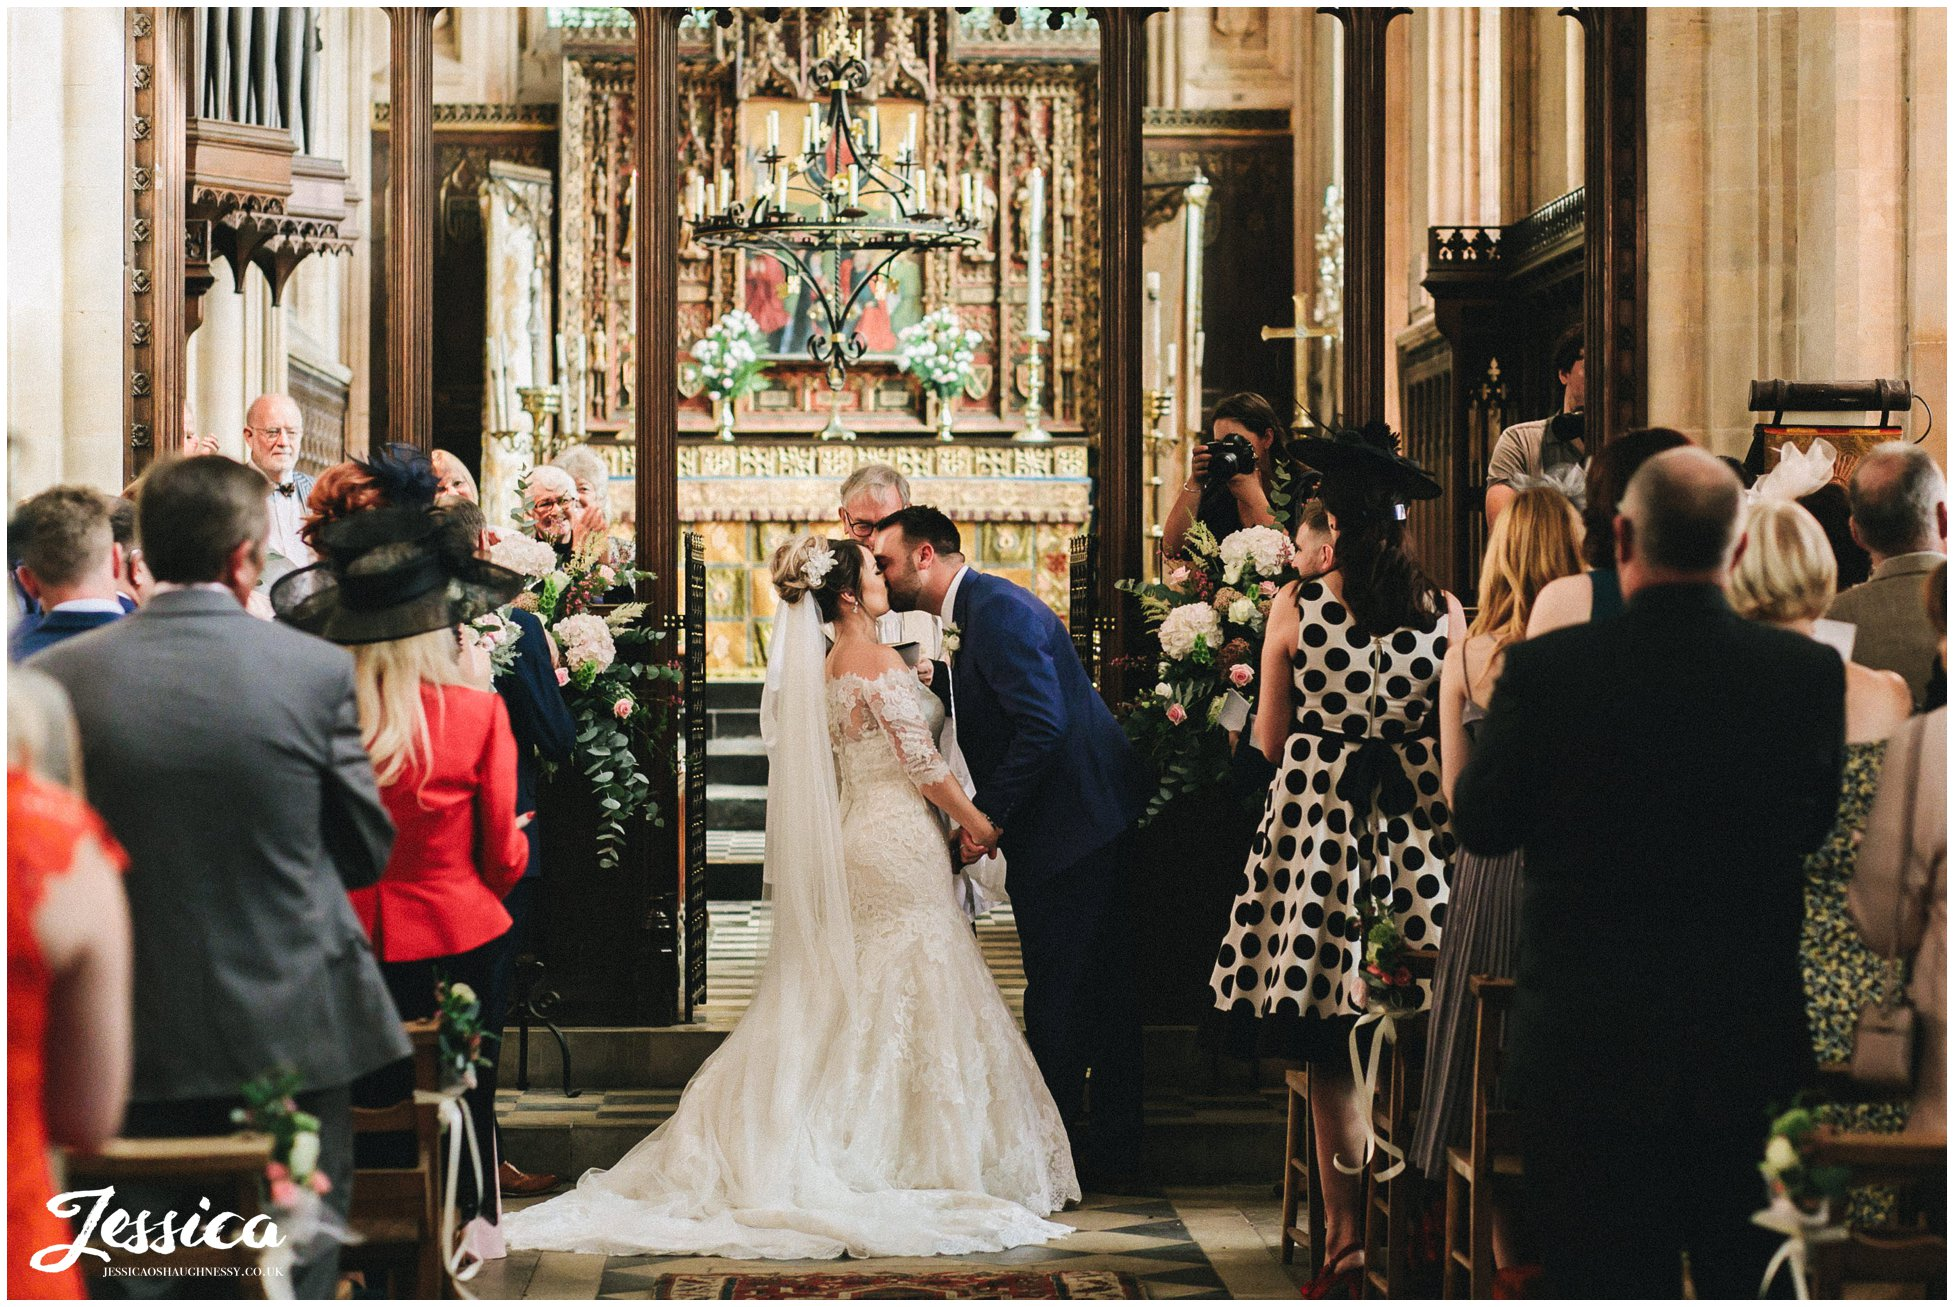 the couple share their first kiss as husband and wife